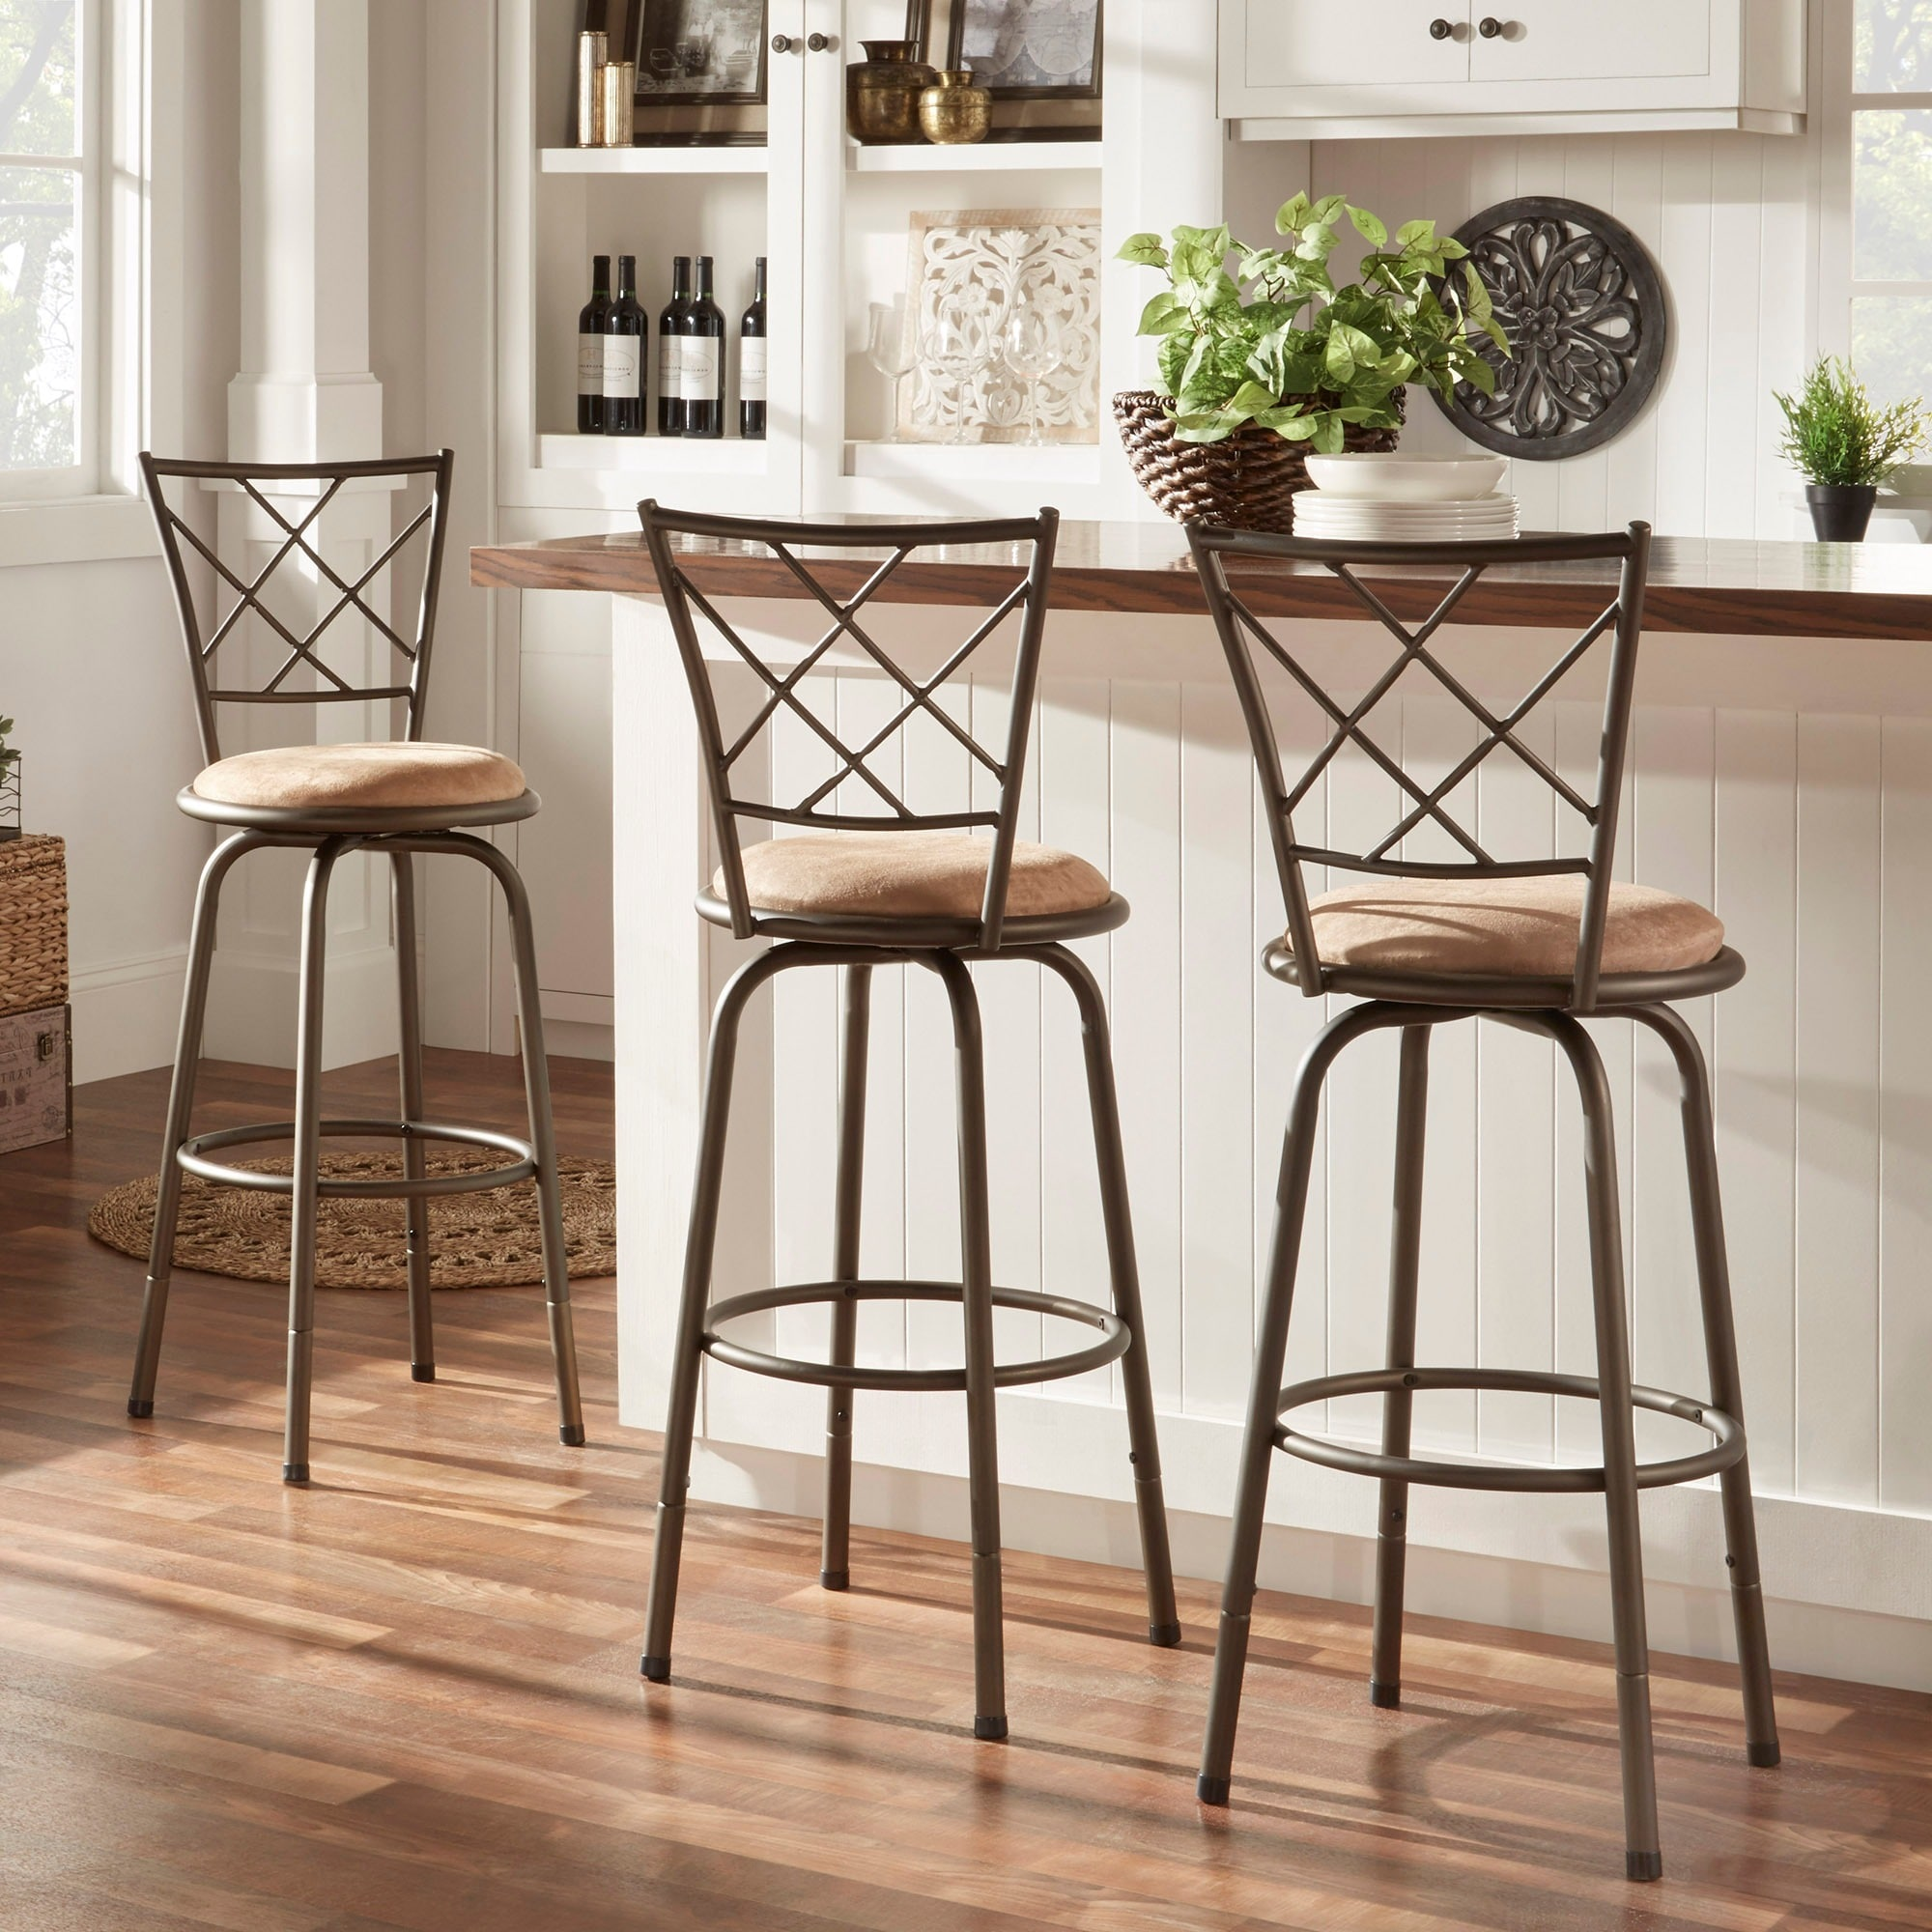 Countertop Height For Bar Stools : Kitchen Bar Stools Counter Top Chairs Seat Swivel Stool Barstools Set ...